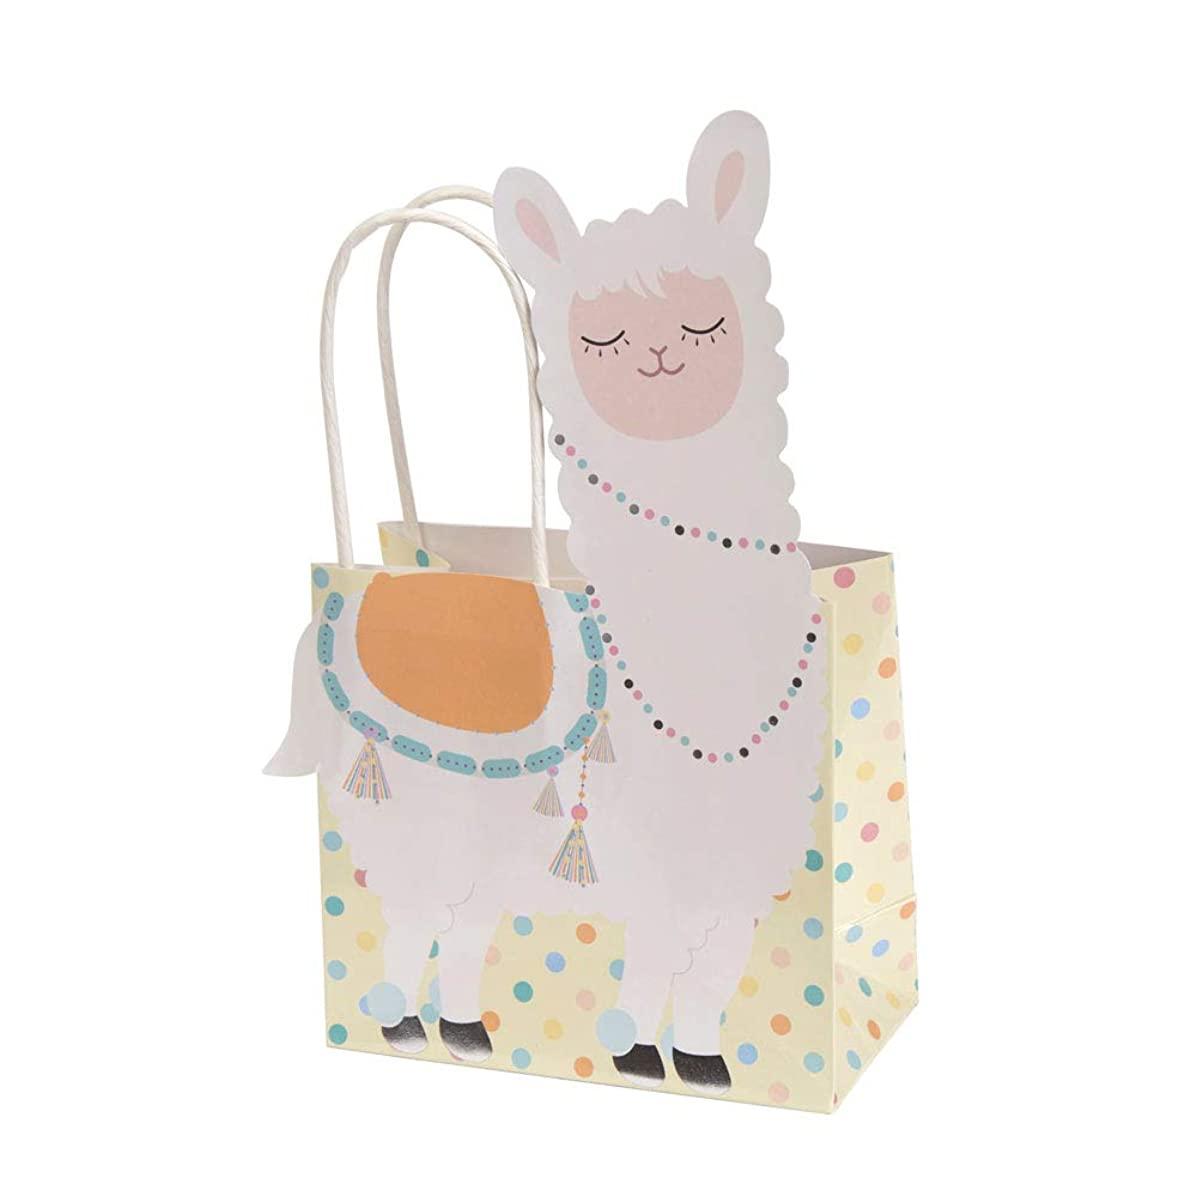 Neviti 776353 Llama Love-Gift Bag-5 Pack, Pastel Multi, 20.6 x 11.7 x 20.8